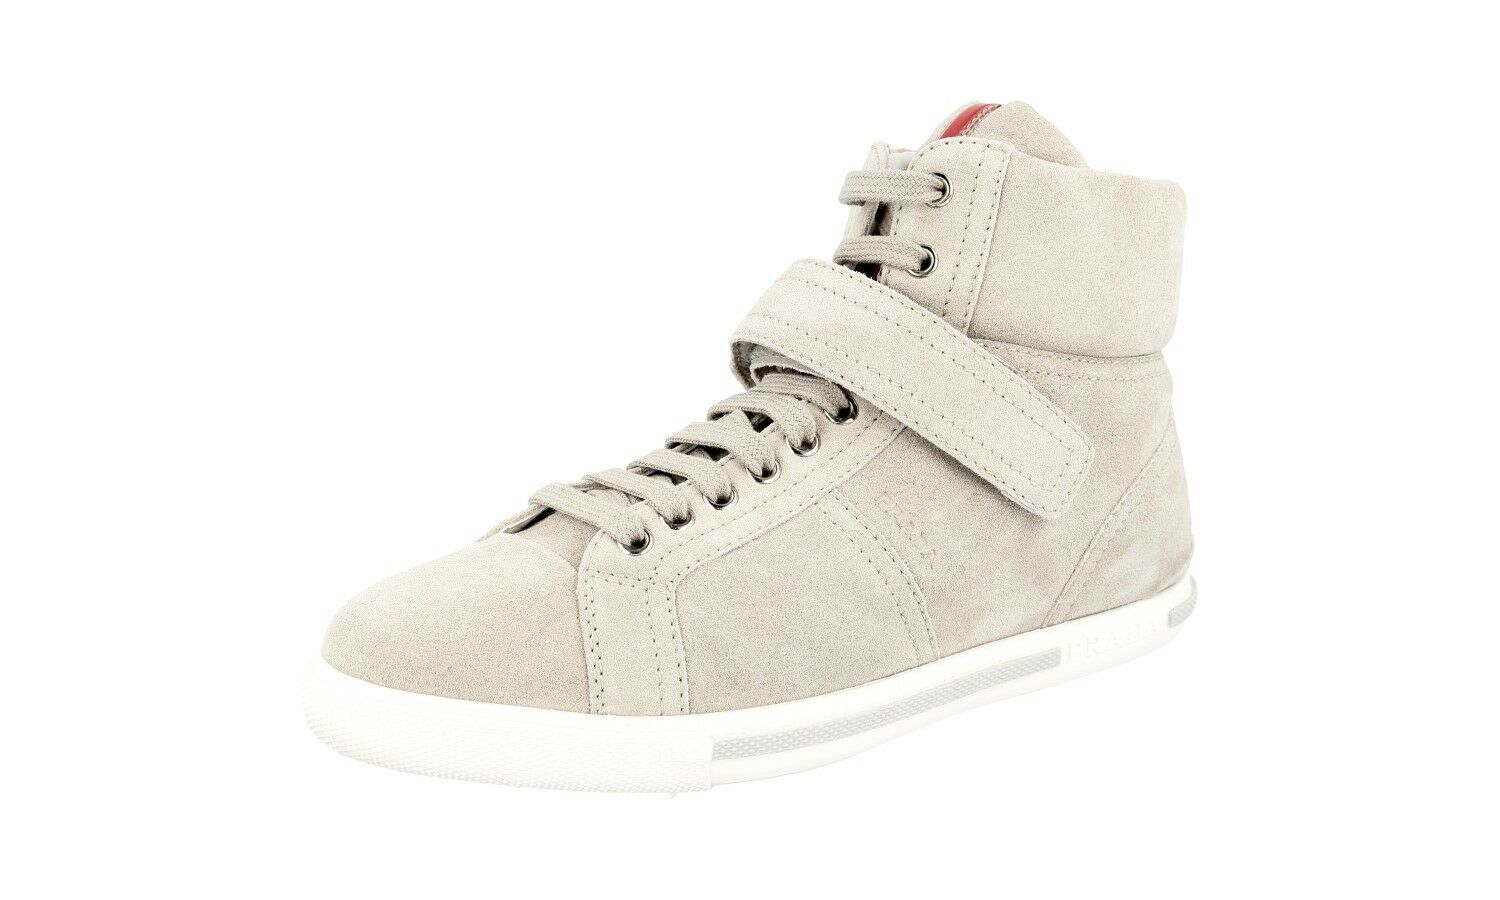 AUTHENTIC PRADA HIGH HIGH HIGH TOP SNEAKERS SHOES 3T5783 SUEDE NEW US 7.5 EU 37,5 38 5da1bc